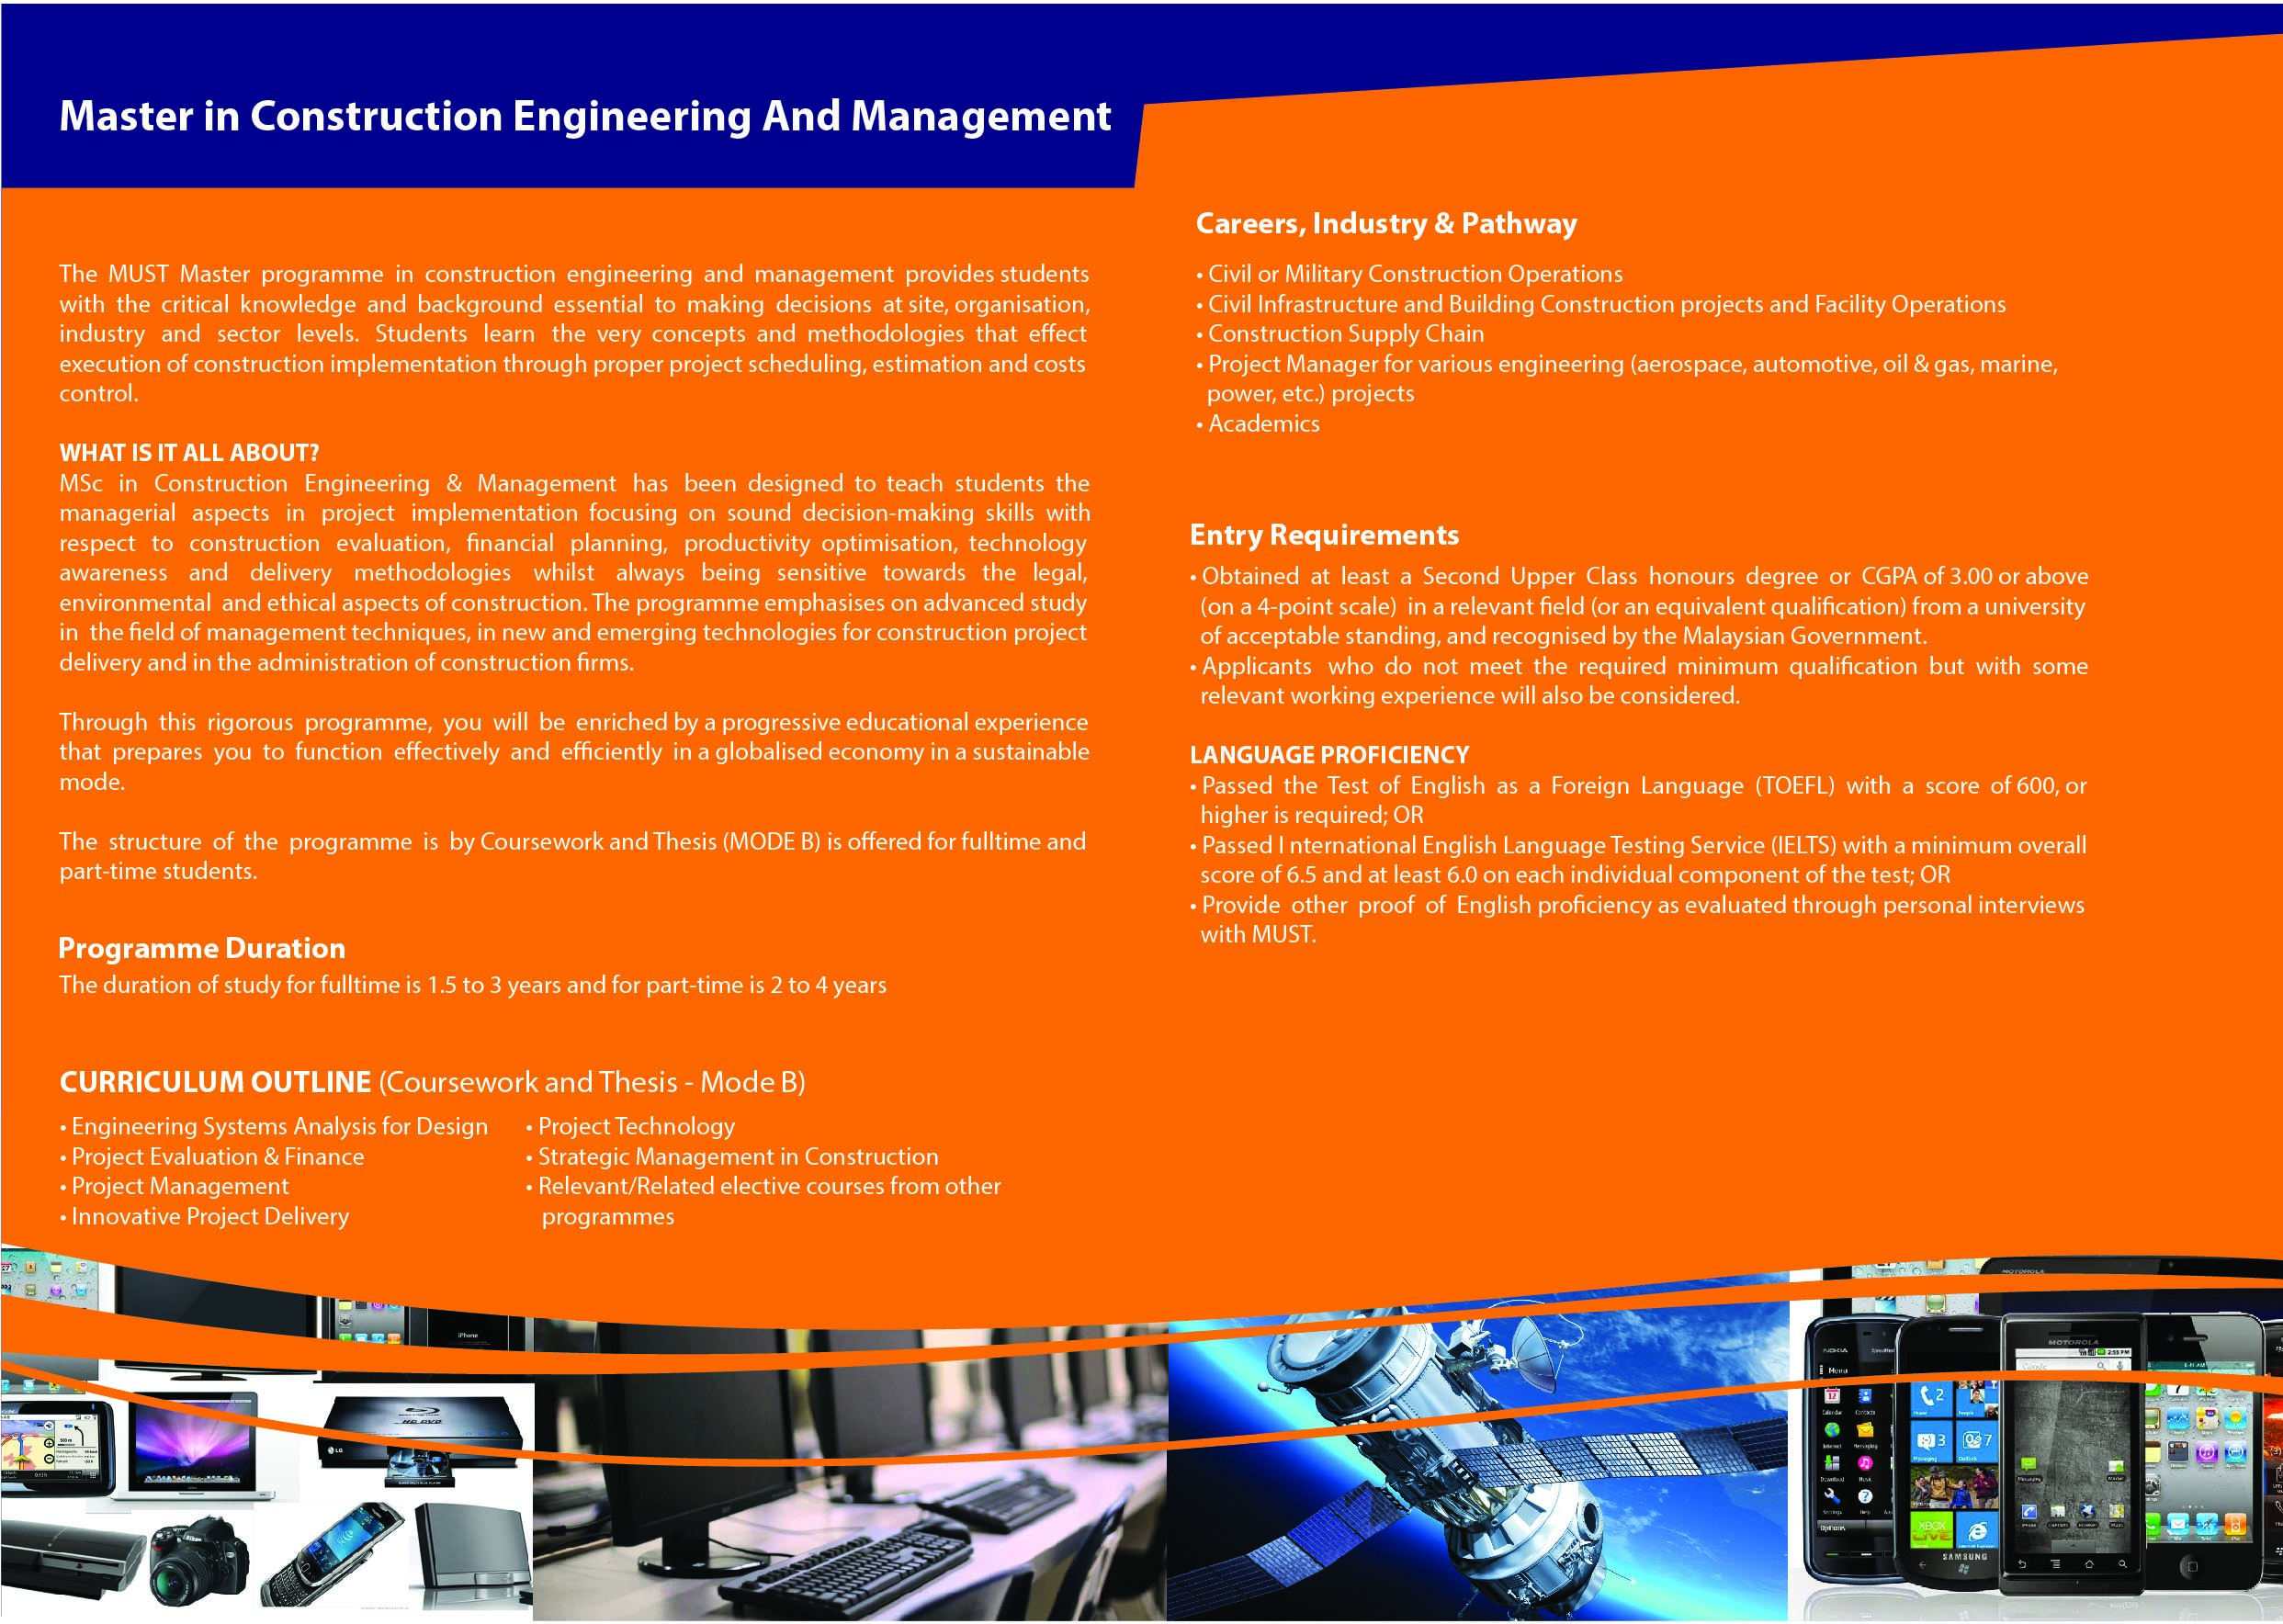 student resume headline resume templates professional cv student resume headline student resume examples entry level graduate msc construction engineering must london currently the